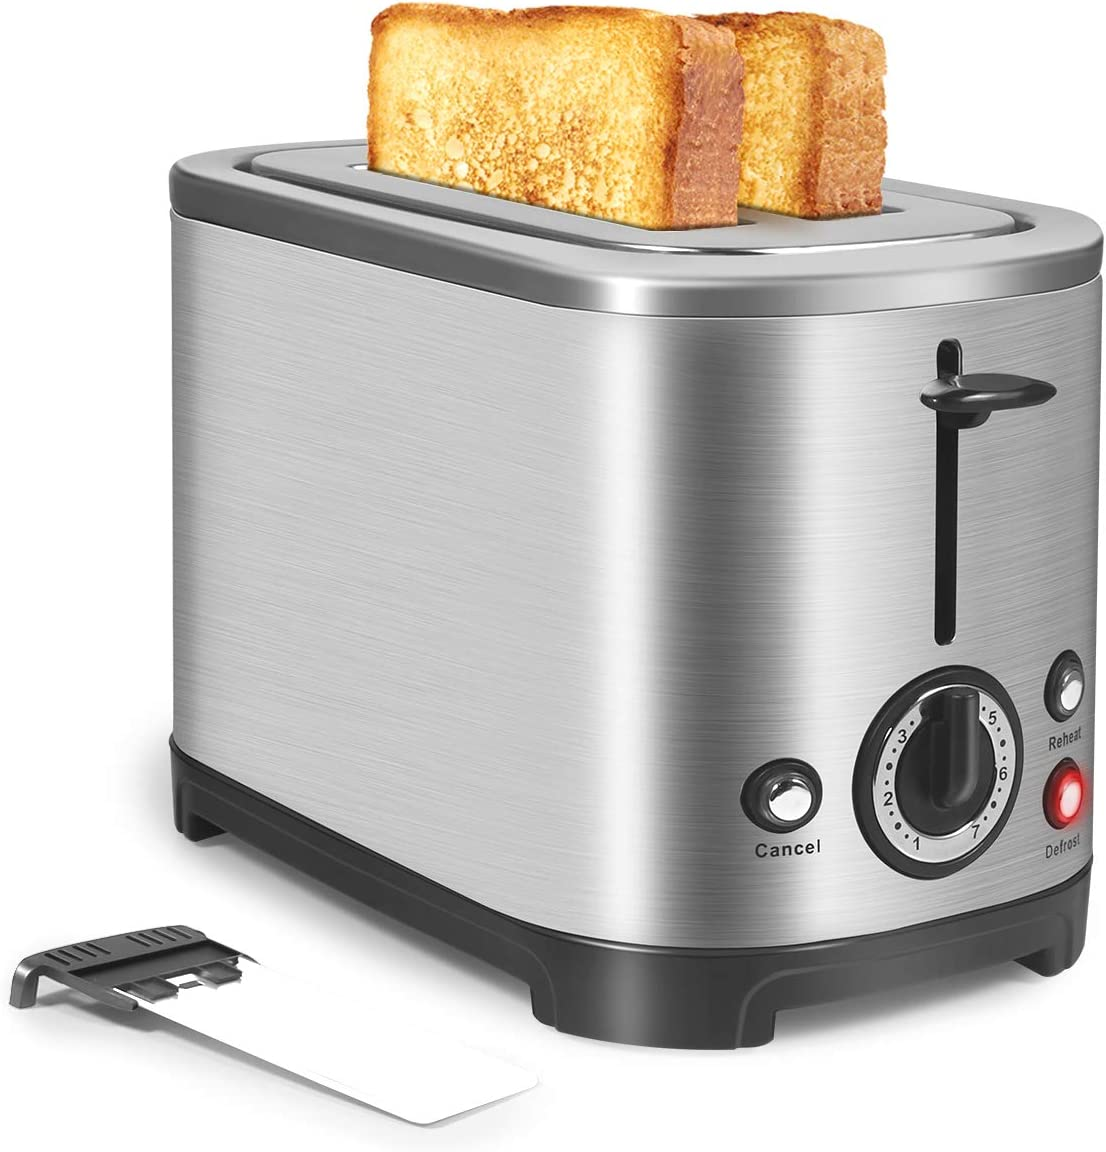 Toaster 2 Slice Wide Slot, Stainless Steel Toaster with 7Shade Settings/Cancel/Bagel/Defrost/Reheat Function, Removal Crumb Tray, Small Toasters